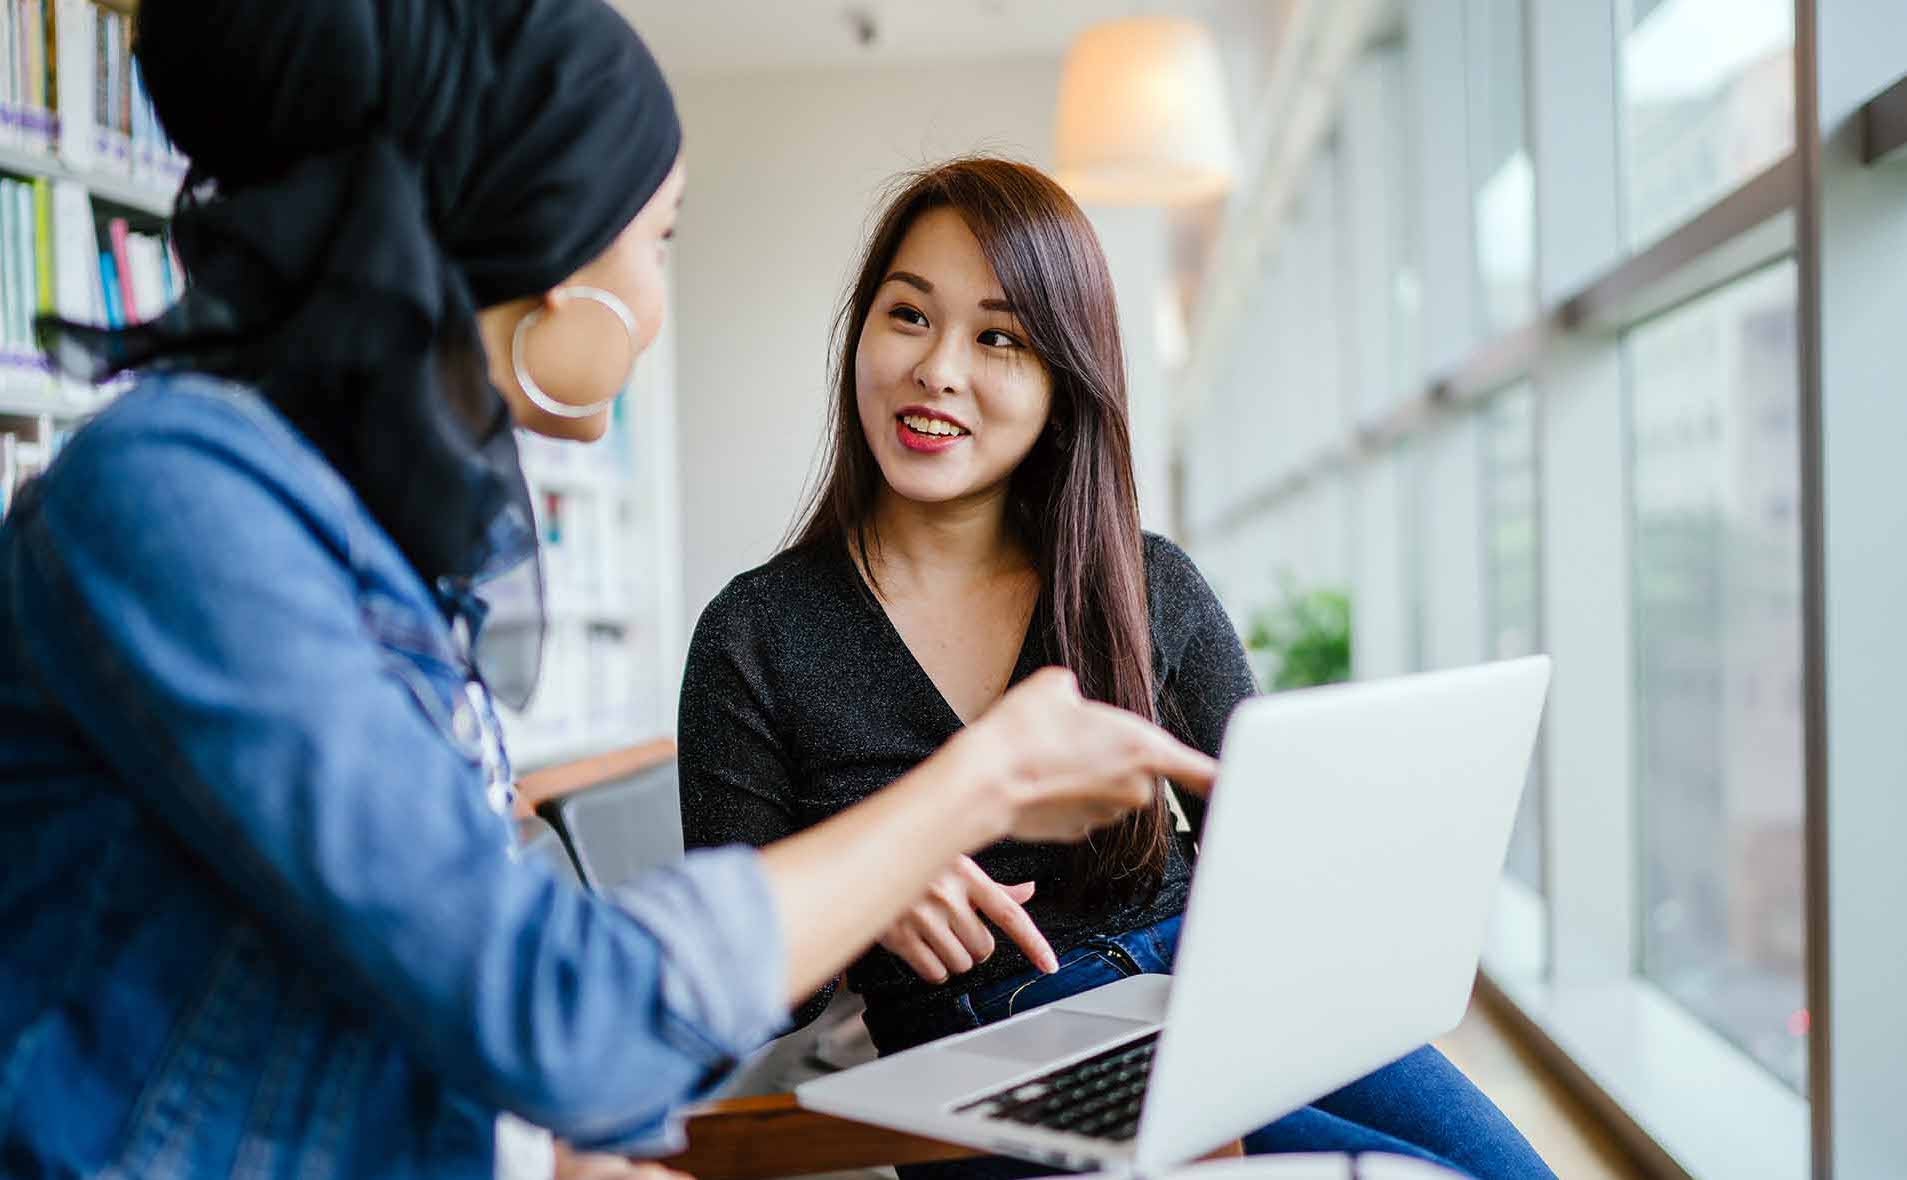 A young Asian woman has a business meeting with a Muslim woman. They are both sitting in an office and talking over a laptop computer during the day